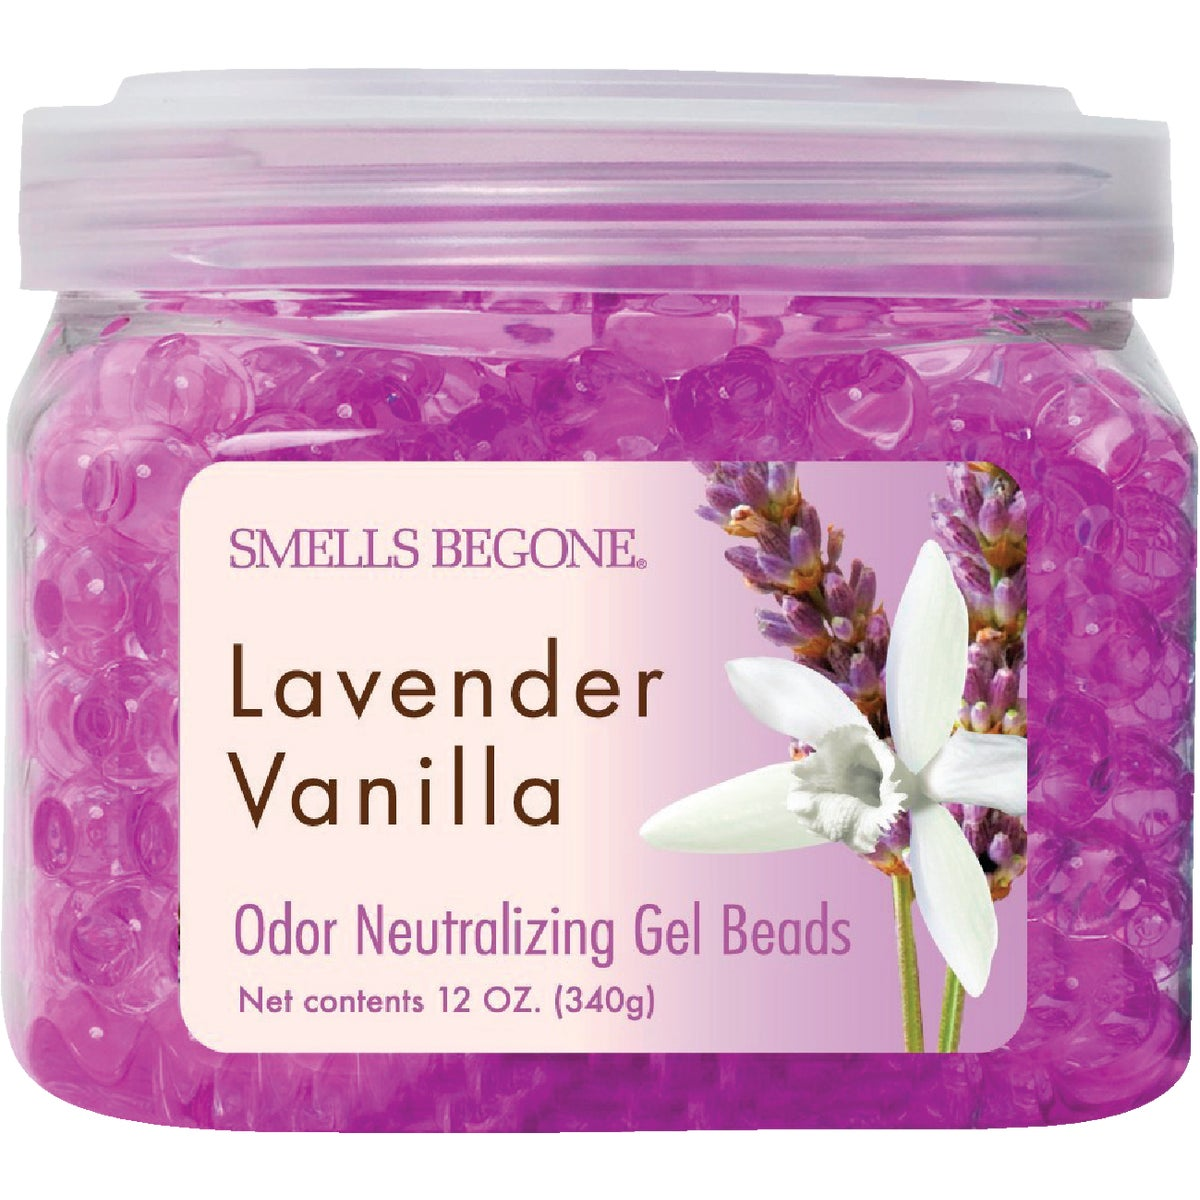 GEL BEADS NEUTRALIZER